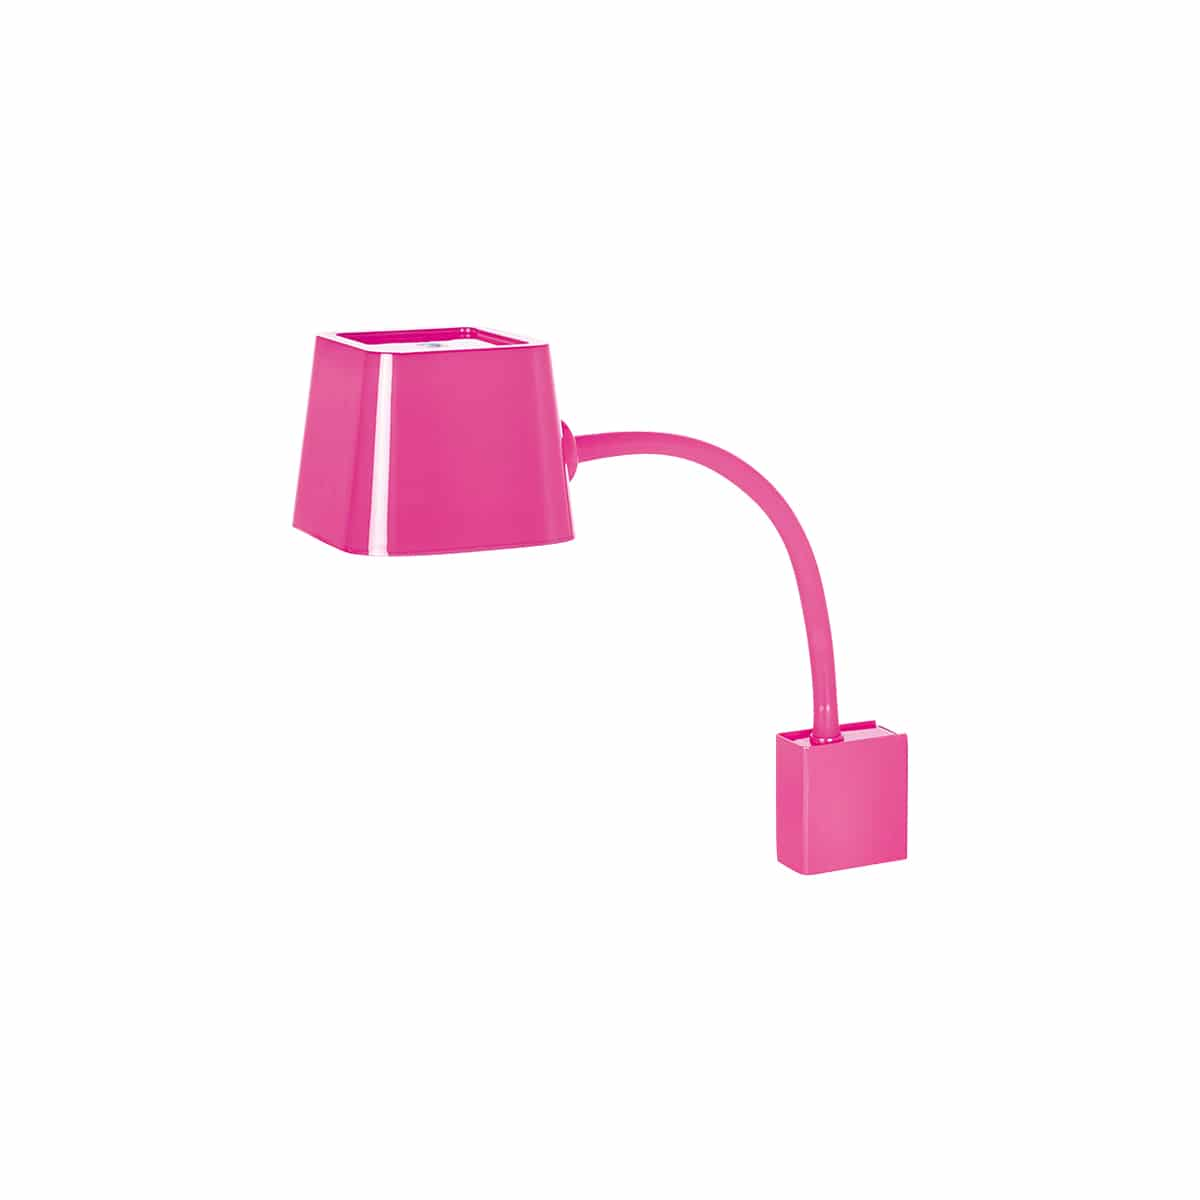 Applique Flexi rose Faro Barcelona zeeloft